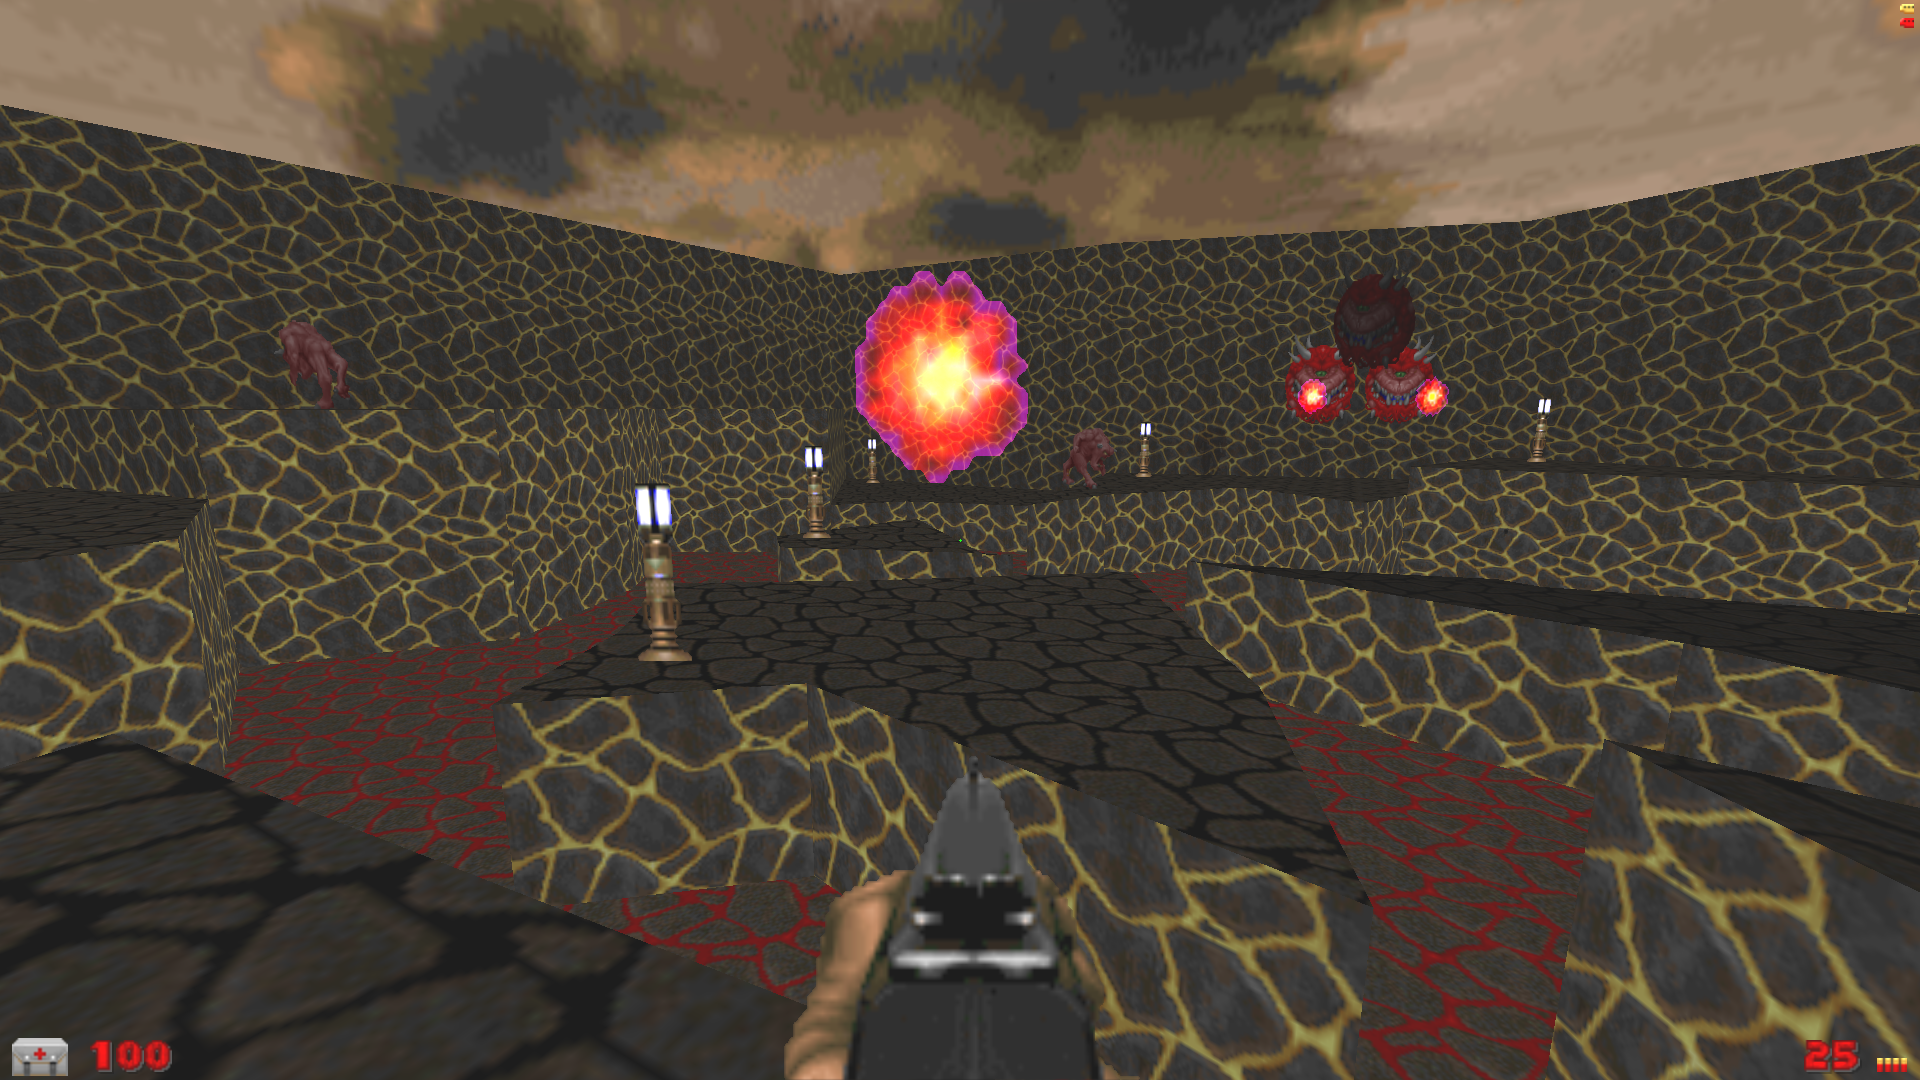 Screenshot_Doom_20200419_162216.png.f2ea6416993370c2597161b3a5bfe975.png